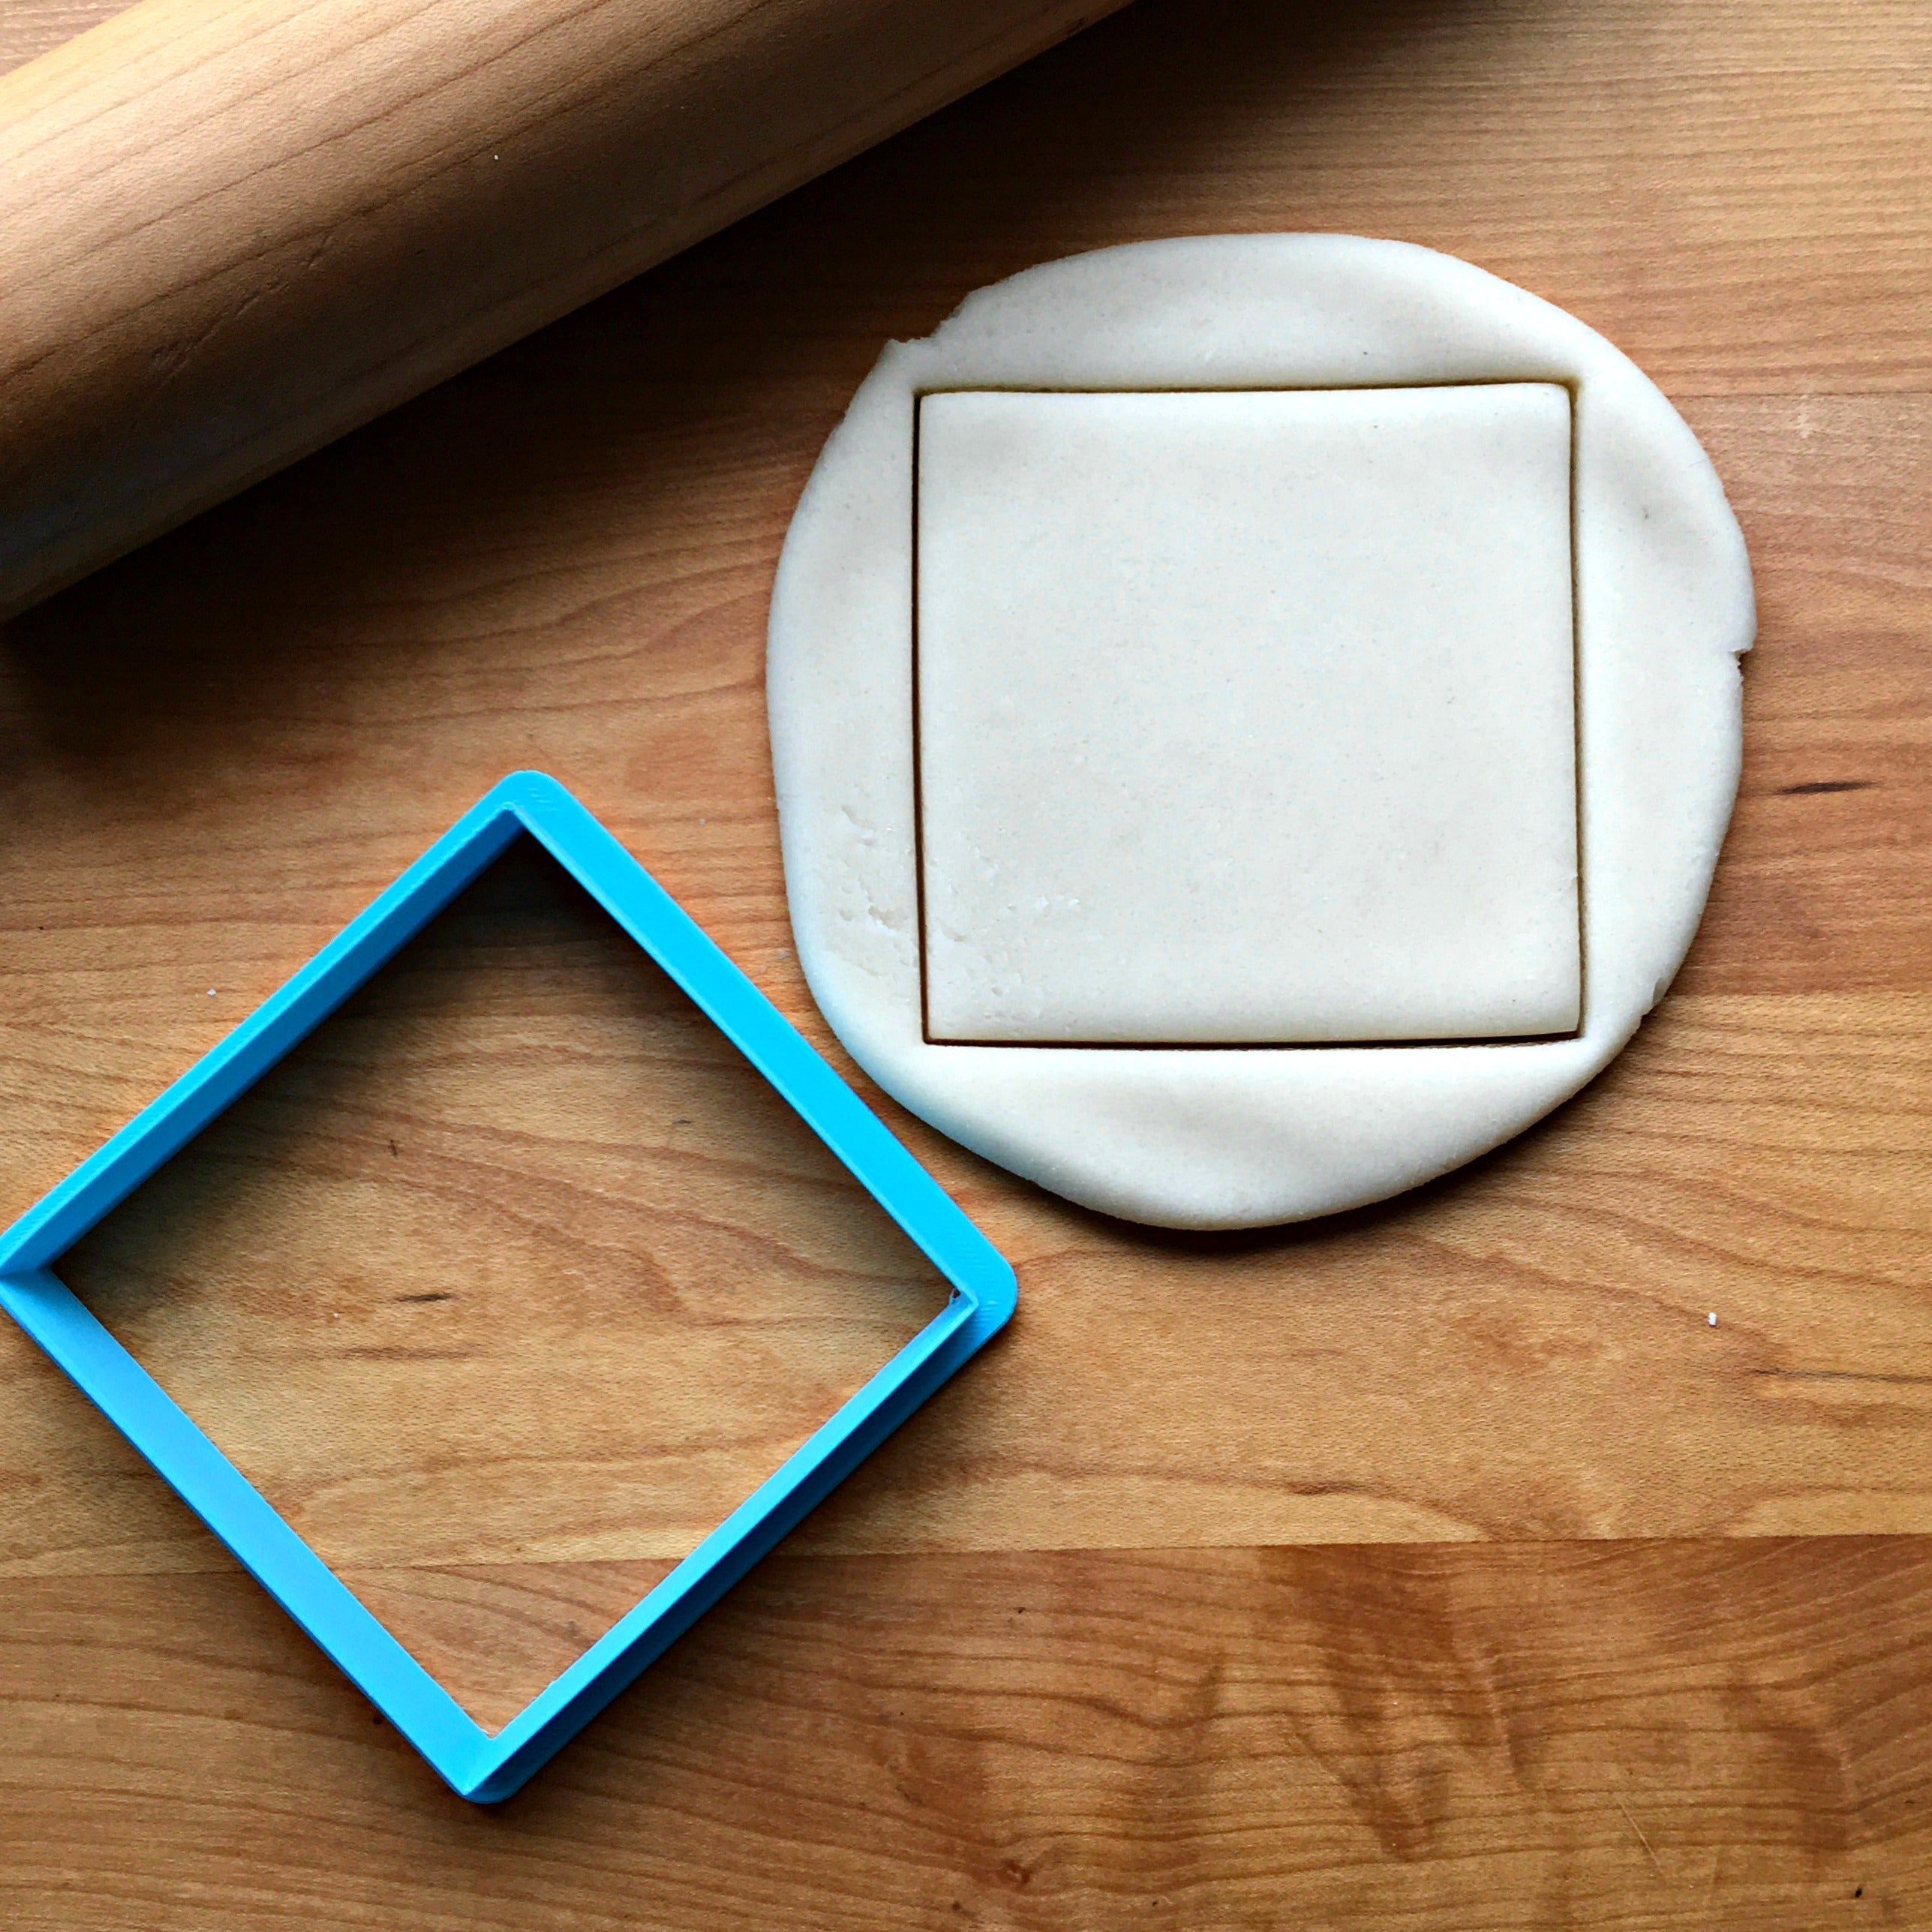 Square Cookie Cutter/Dishwasher Safe